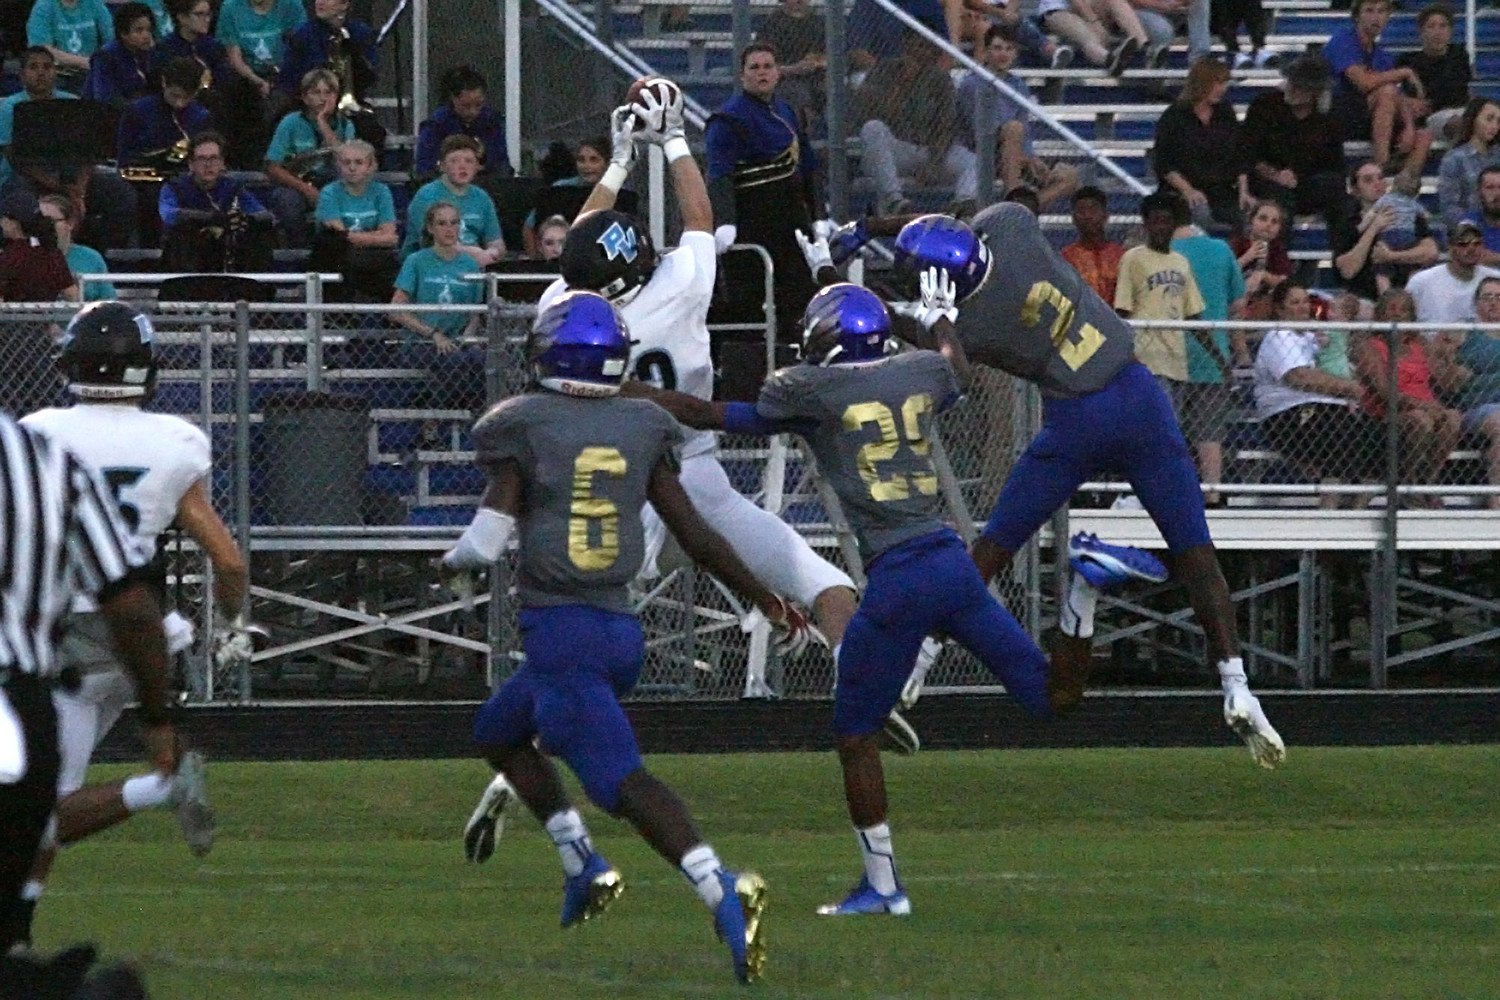 Ponte Vedra's Connor Cawood tries to make a catch against three Pedro Menendez defenders during last Friday's loss.